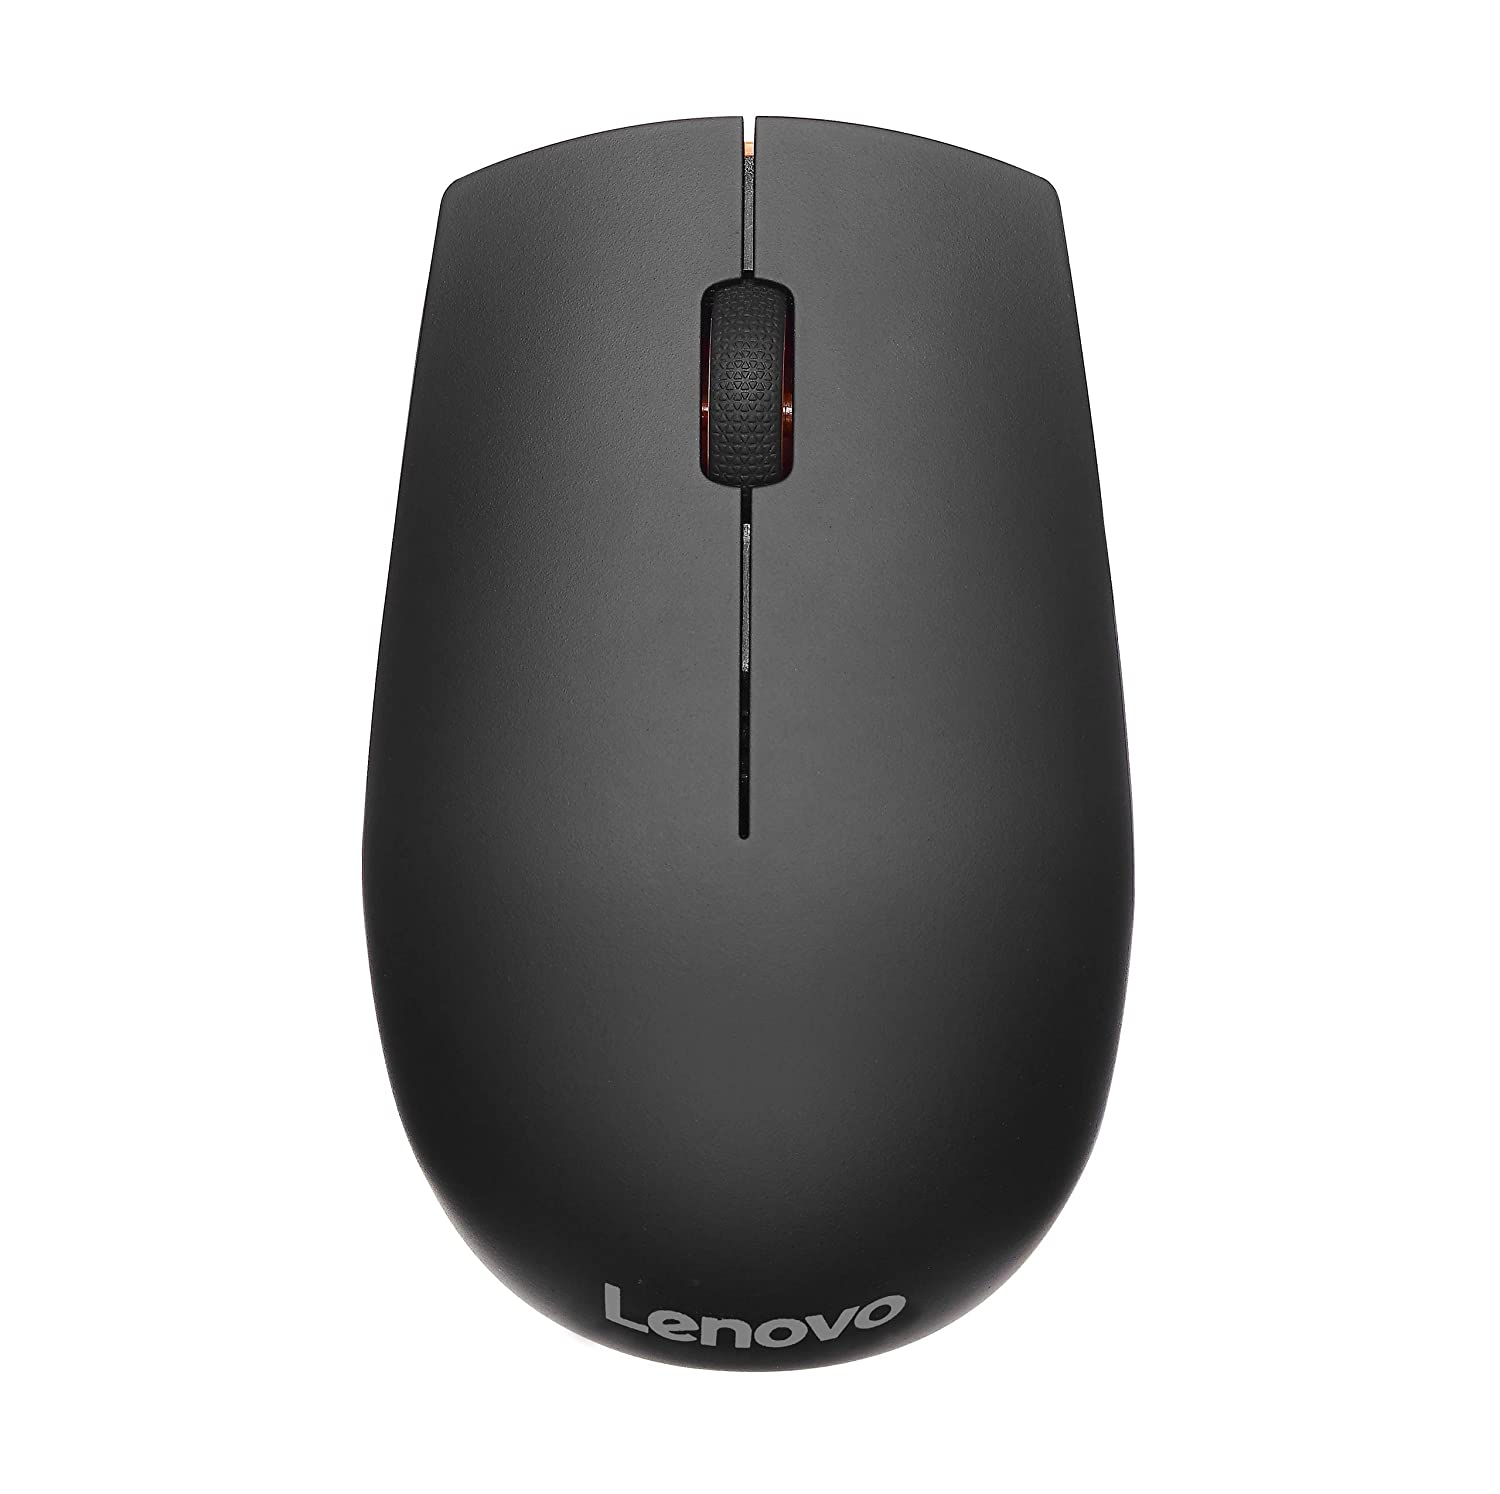 2a19b899b63 Amazon.com: Lenovo 500 Wireless Mouse, Black, 1000 dpi, 2.4 GHz wireless  via USB, Streamlined design, Up to 12 months battery life, GX30N71808:  Computers & ...